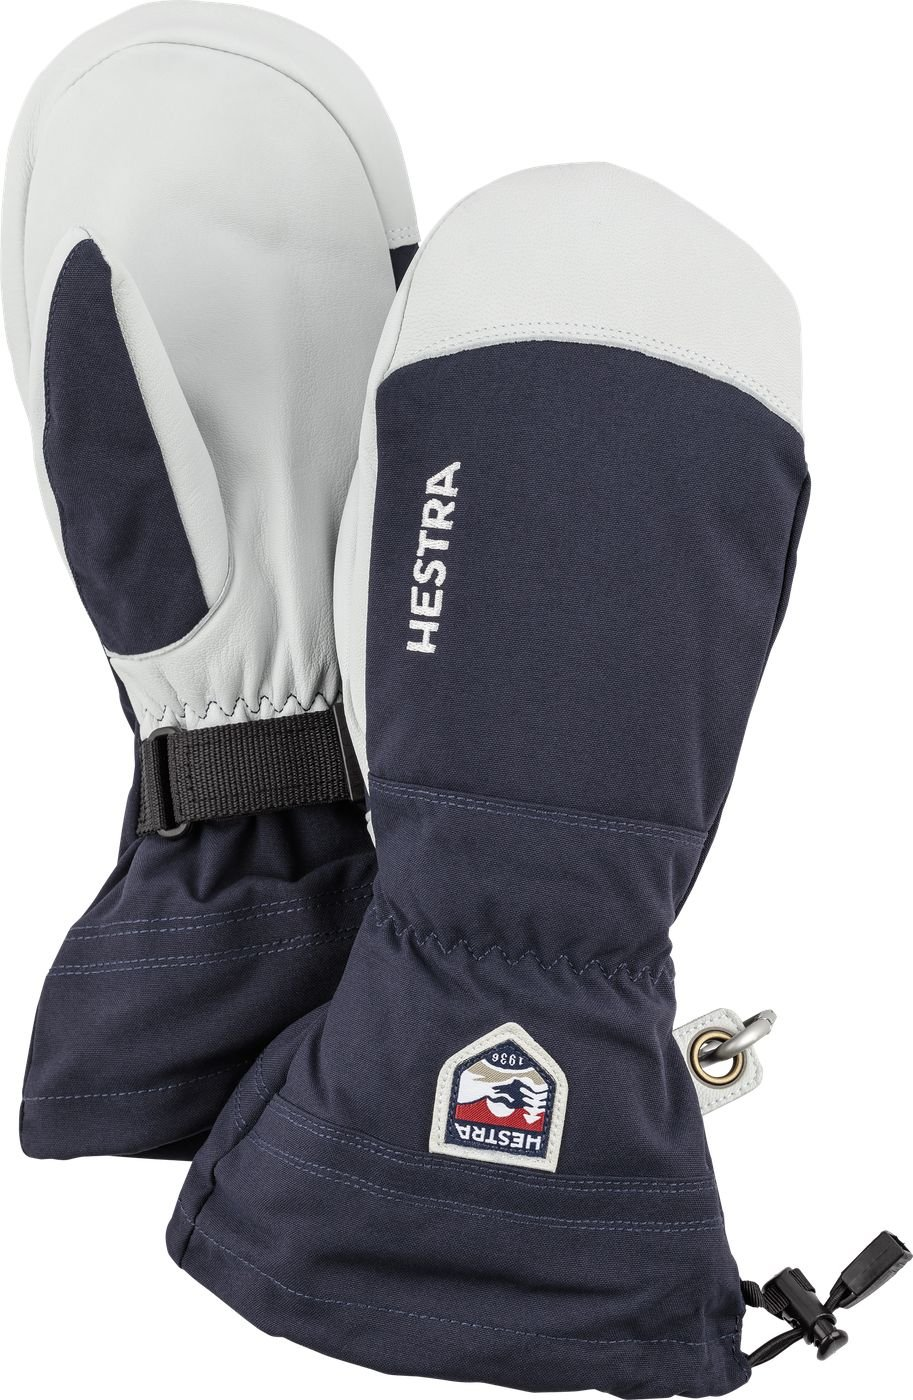 Hestra Mens and Womes Ski Gloves: Army Leather Wind-Proof Water ResisTant Winter Mitten, Black, 11 by Hestra